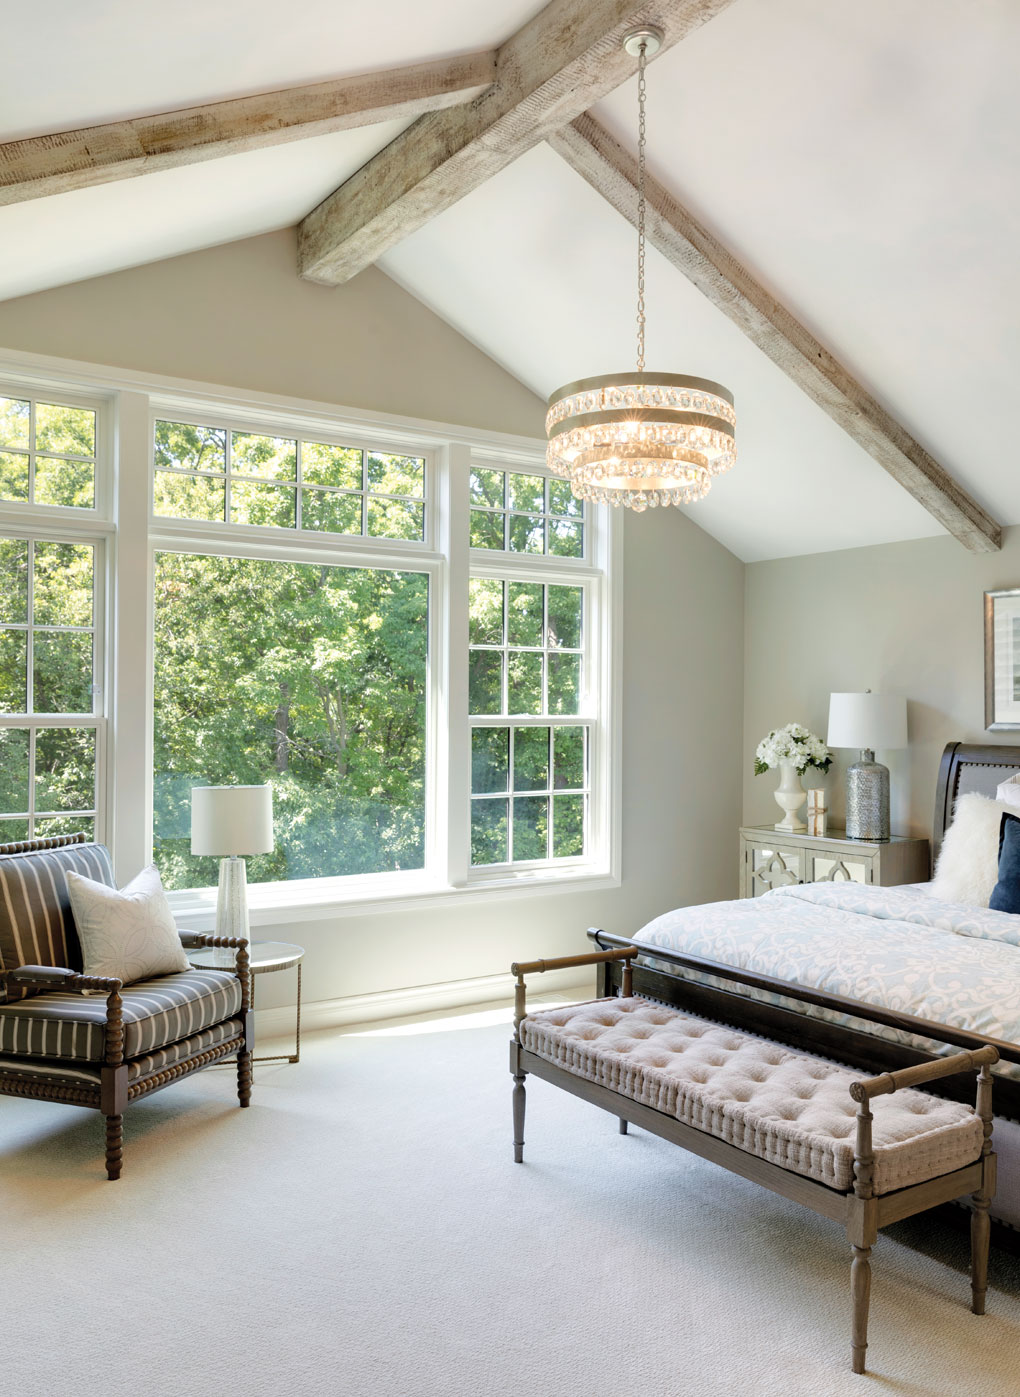 Rustic wood beams line the high ceiling that overlooks a large bed and chair inside a master bedroom. Large windows also look out onto trees on the far wall.